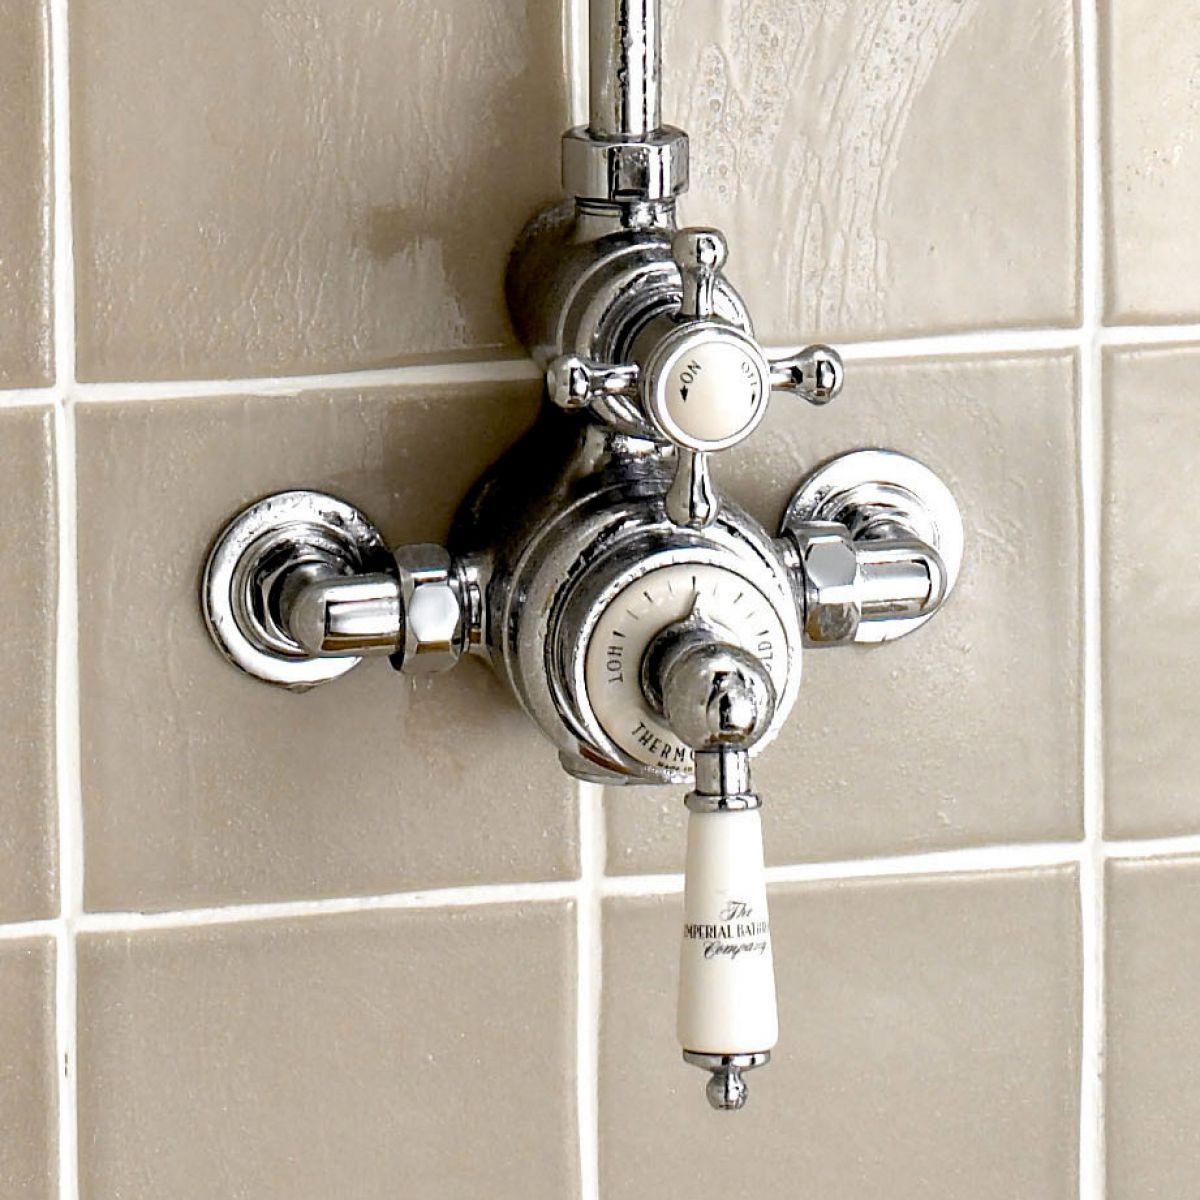 Exposed Thermostatic Shower Valve Gold - Shower Designs